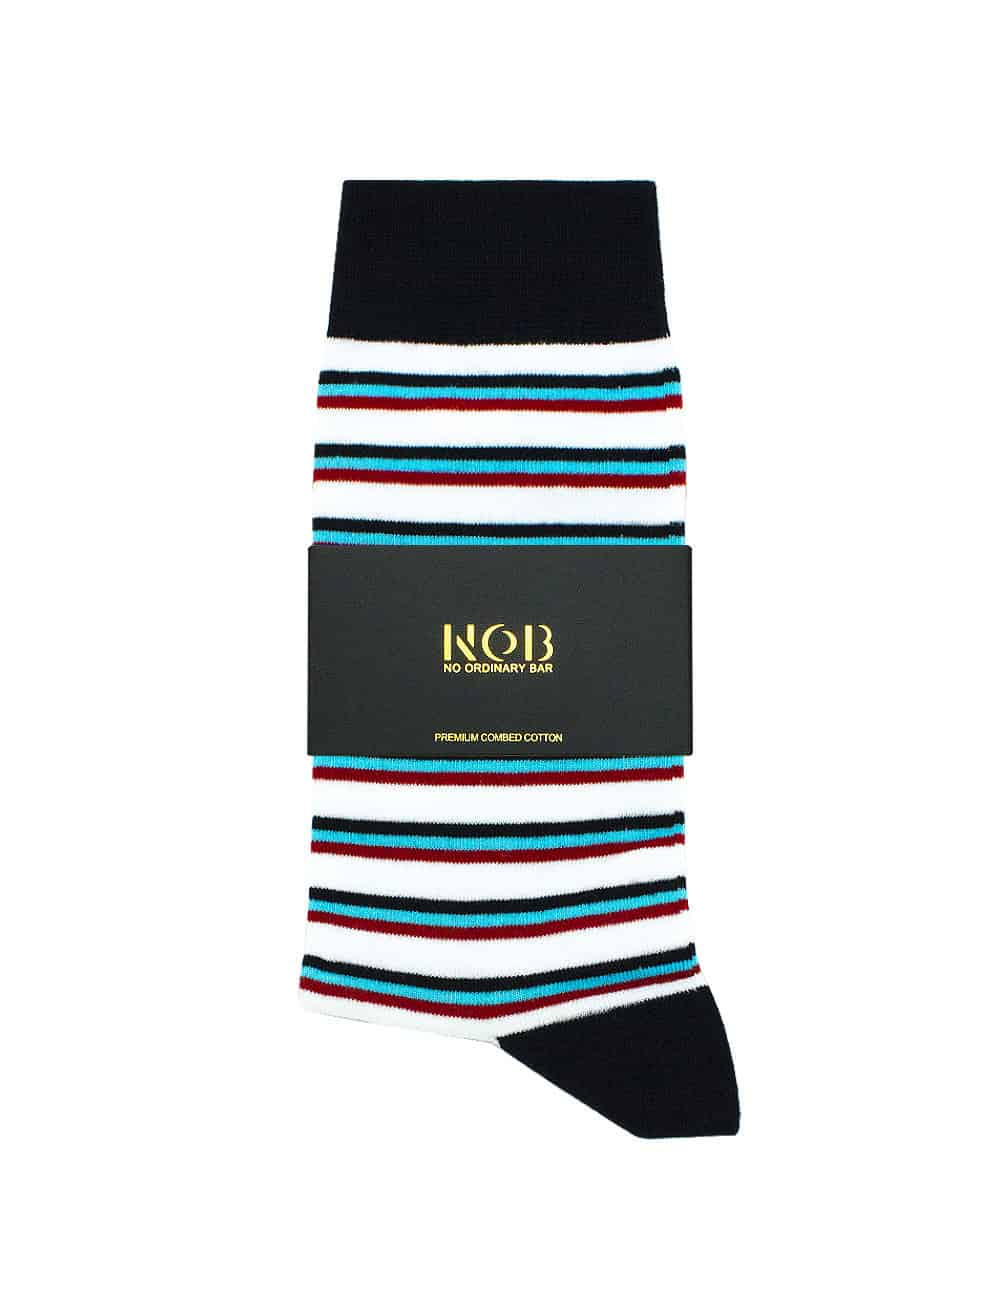 WHITE WITH NAVY, TURQUOISE AND RED STRIPES CREW SOCKS SOC4B.NOB1